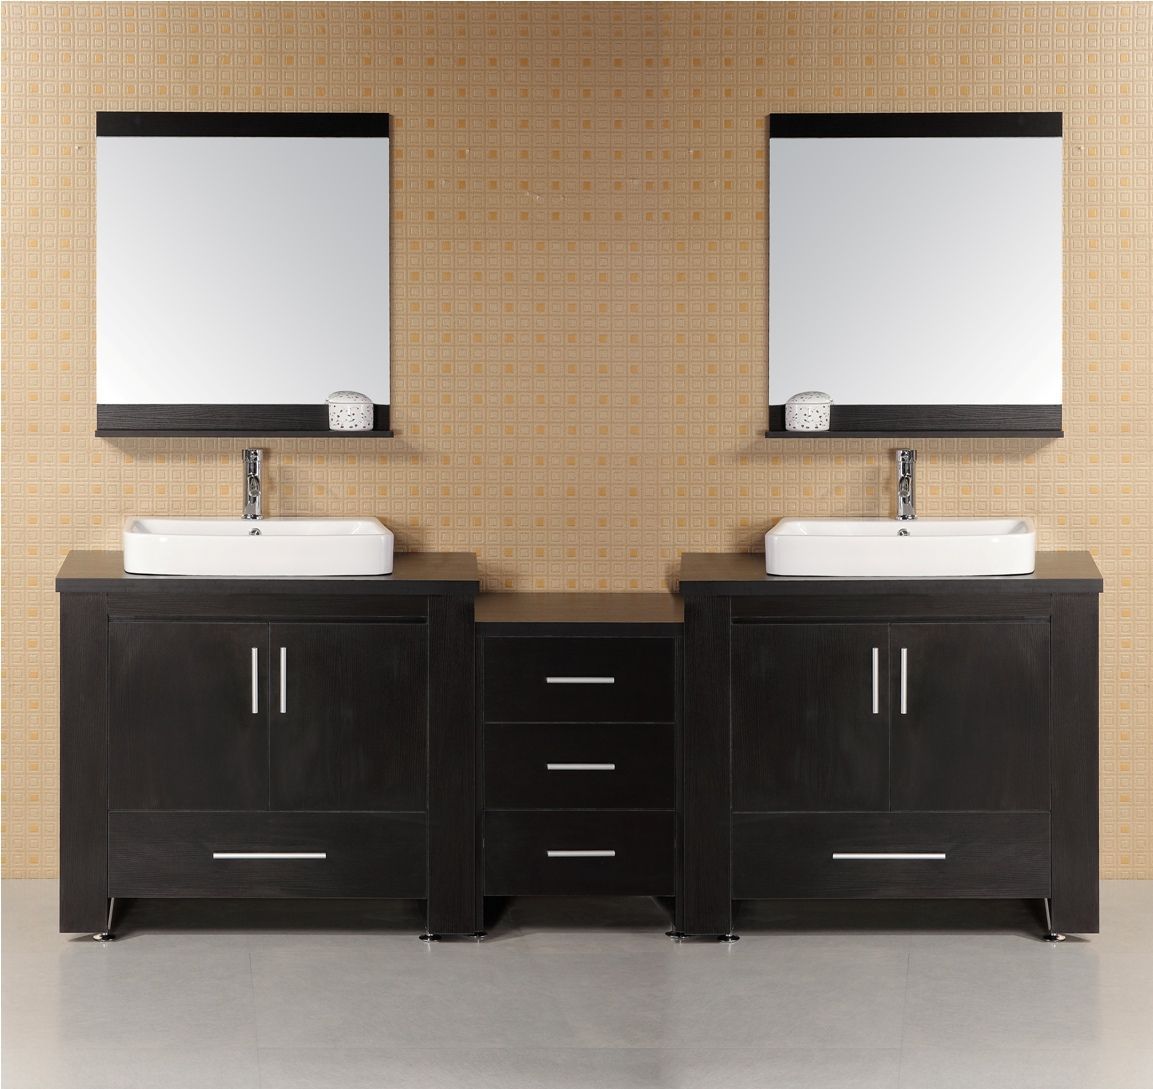 Sagehill Designs 96 Double Bathroom Vanity With Make Up Station